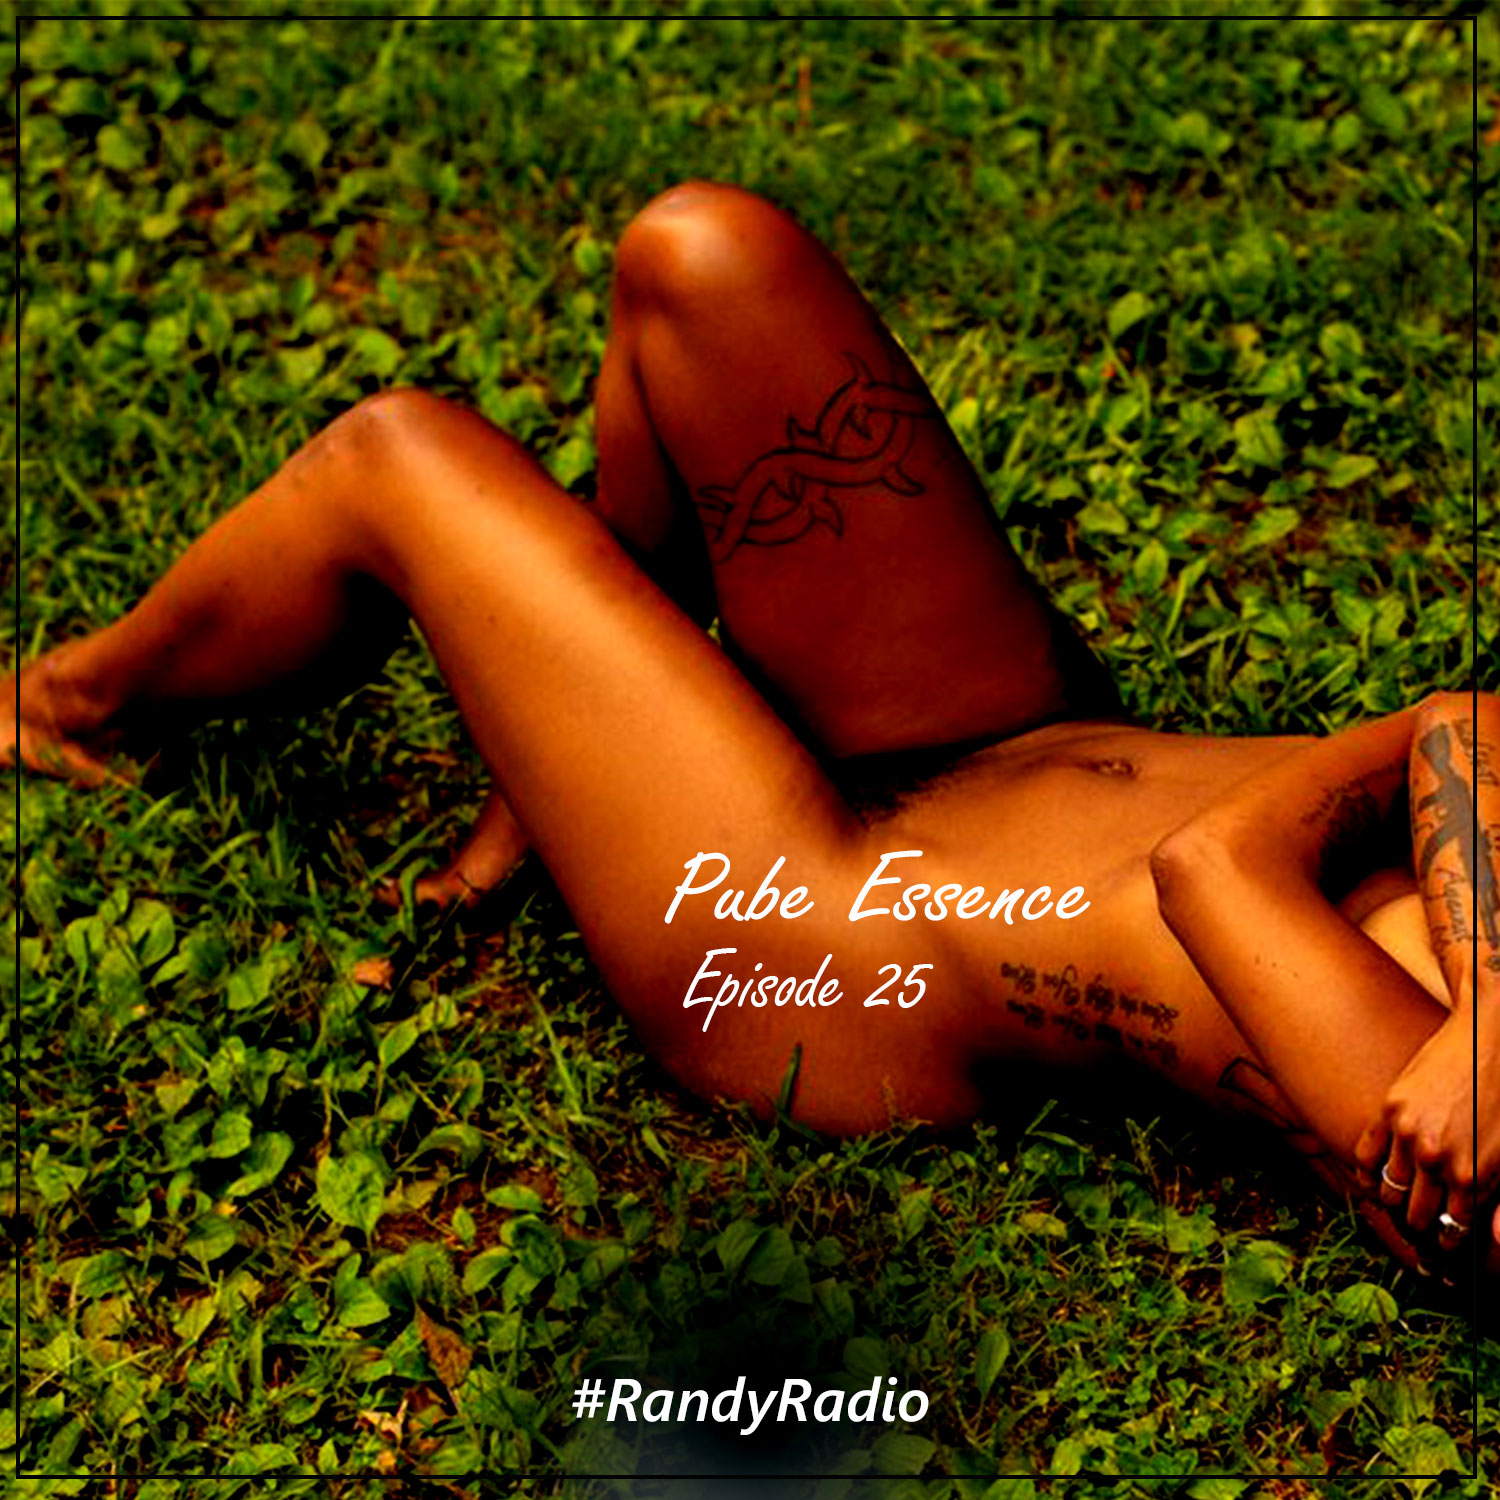 Randy Radio – Pube Essence with Leona